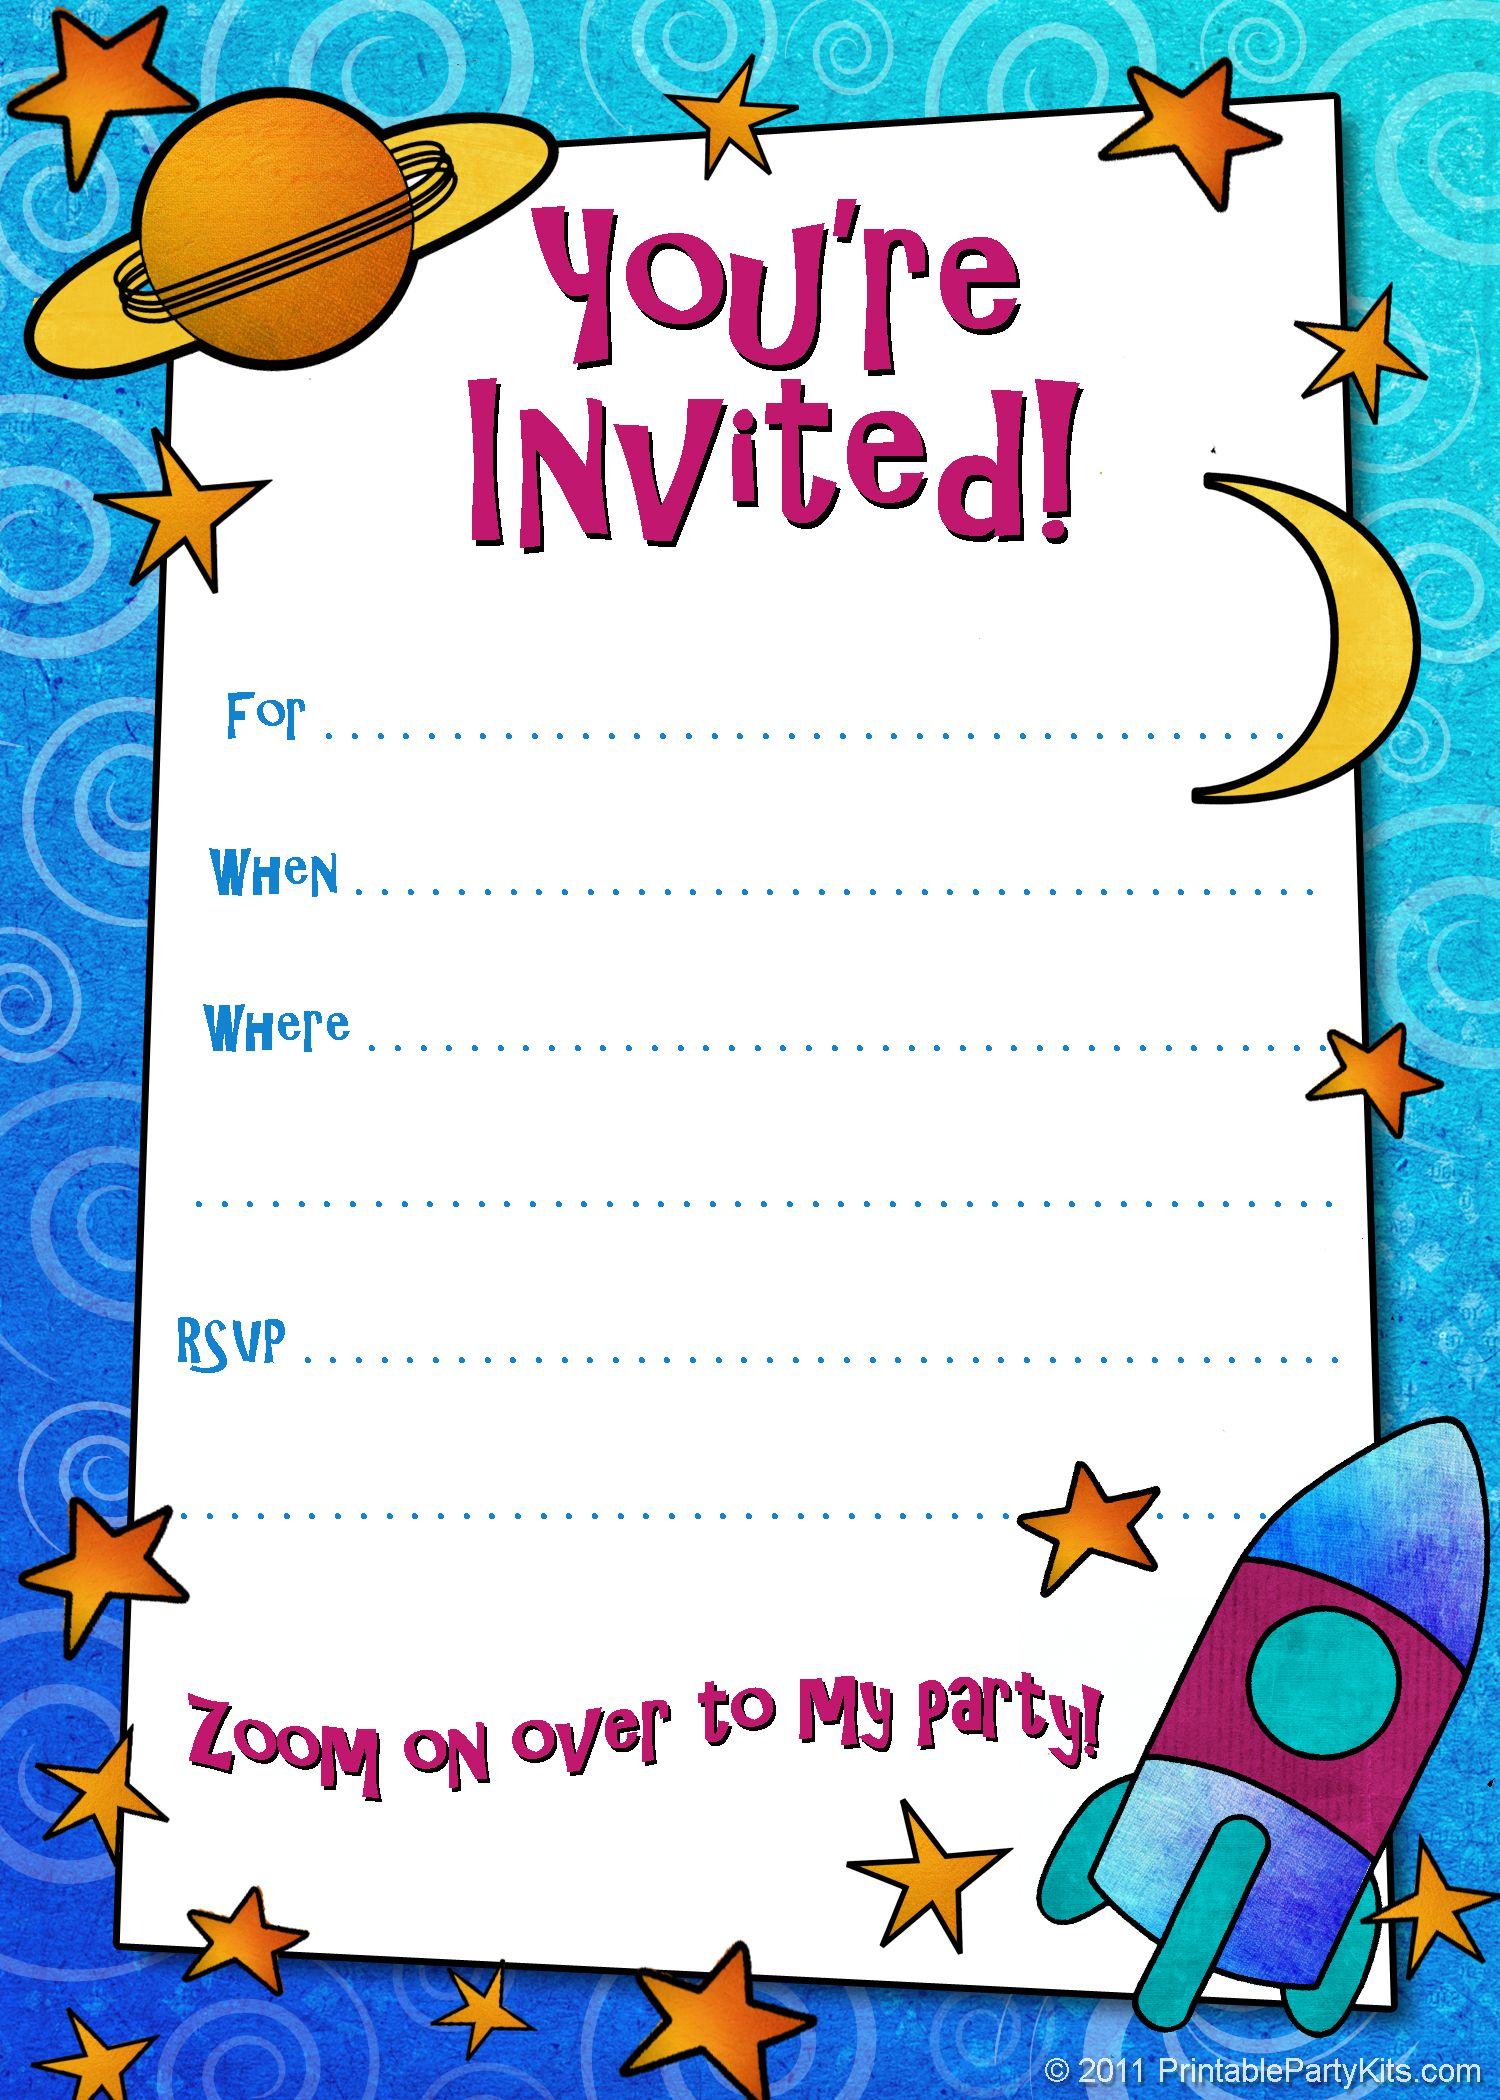 Free printable boys birthday party invitations boy birthday these printable free boys party invites can be made easily at home they come in a variety of themes including cars spaceships frogs barnyard animals stopboris